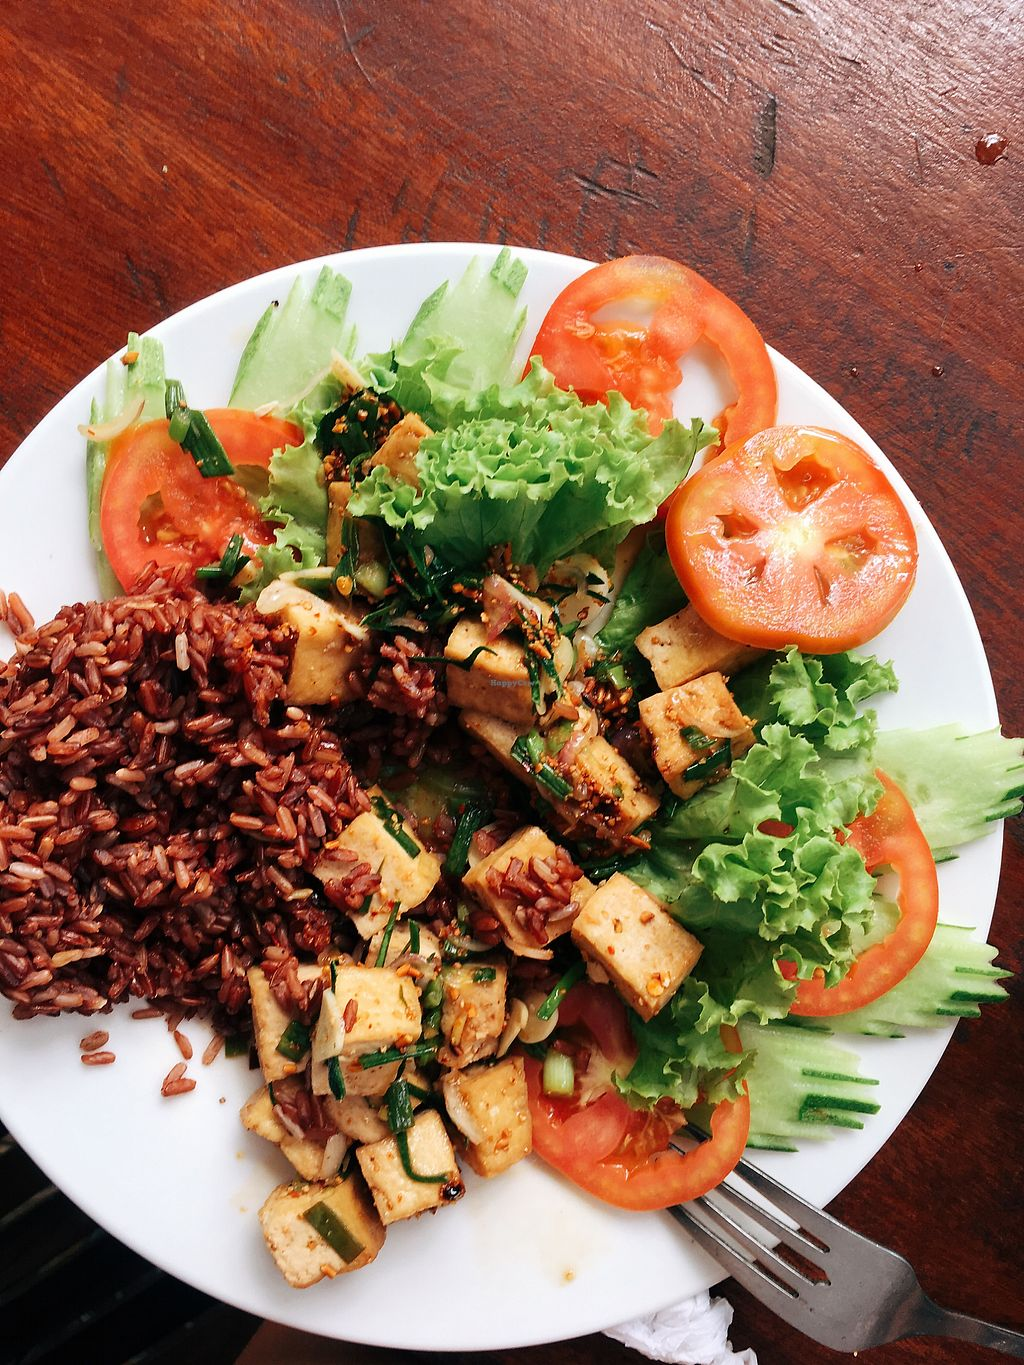 """Photo of Crane   by <a href=""""/members/profile/HappyCow1987"""">HappyCow1987</a> <br/>Khmer Lab with brown rice lemon grass, challots lime leaves etc <br/> January 22, 2018  - <a href='/contact/abuse/image/110127/349758'>Report</a>"""